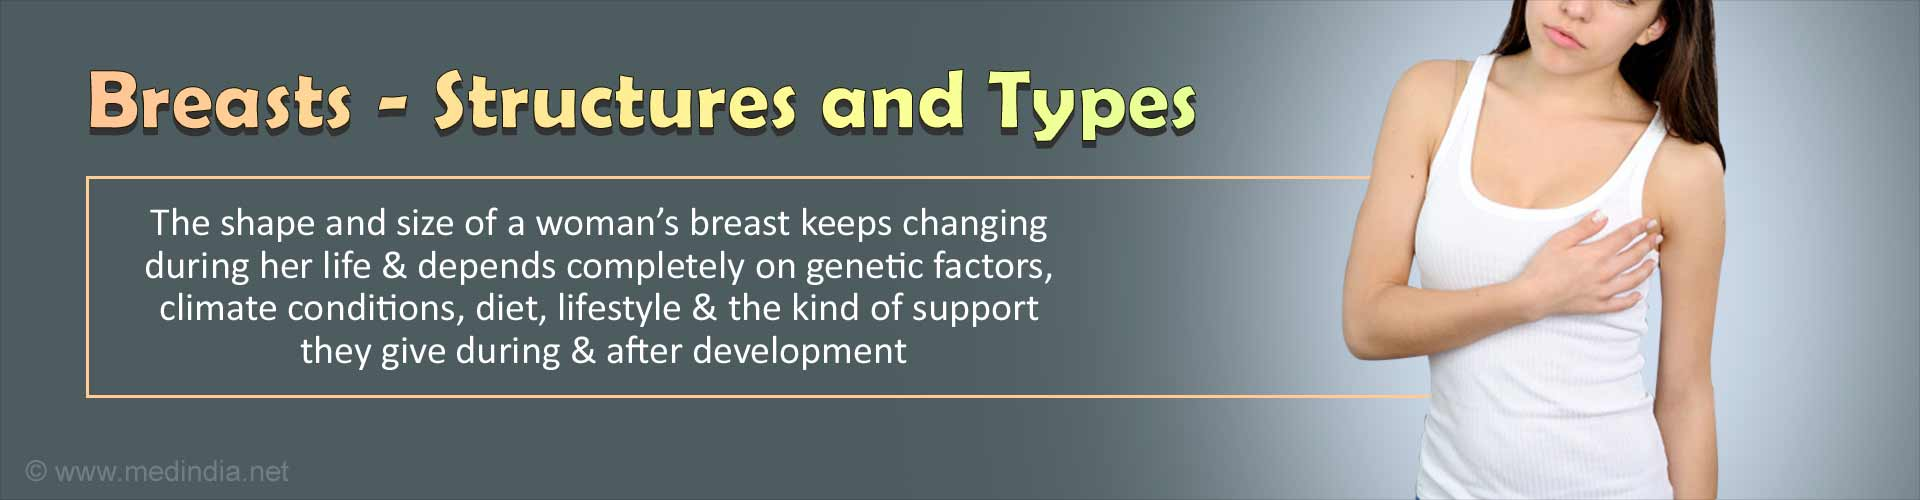 Breasts - Structures and Types